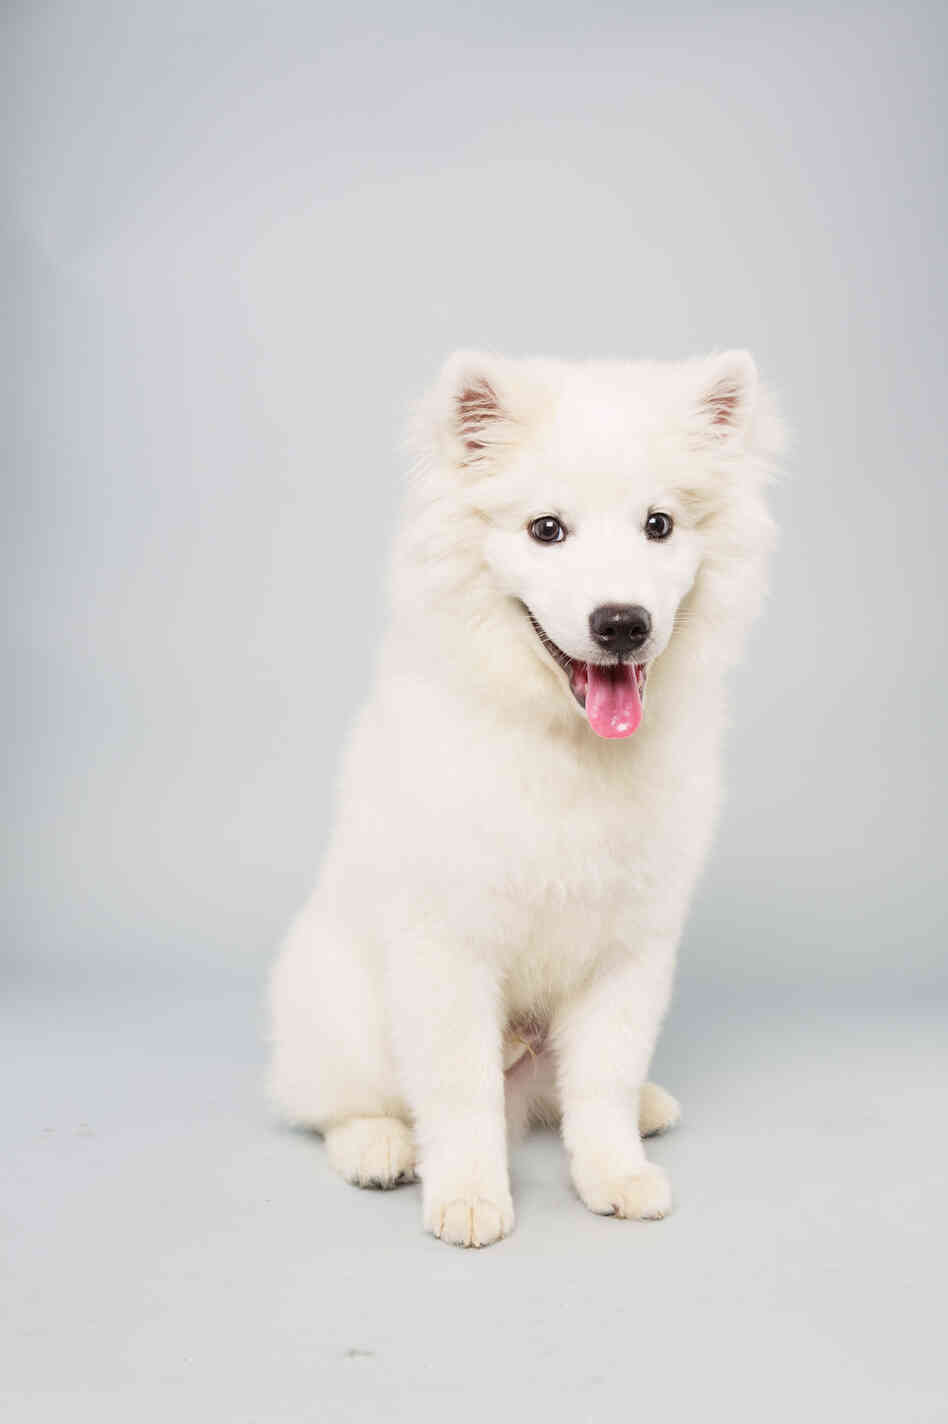 Brody Age: 15 weeks Breed: American Eskimo Fact: One day wants his own doghouse.